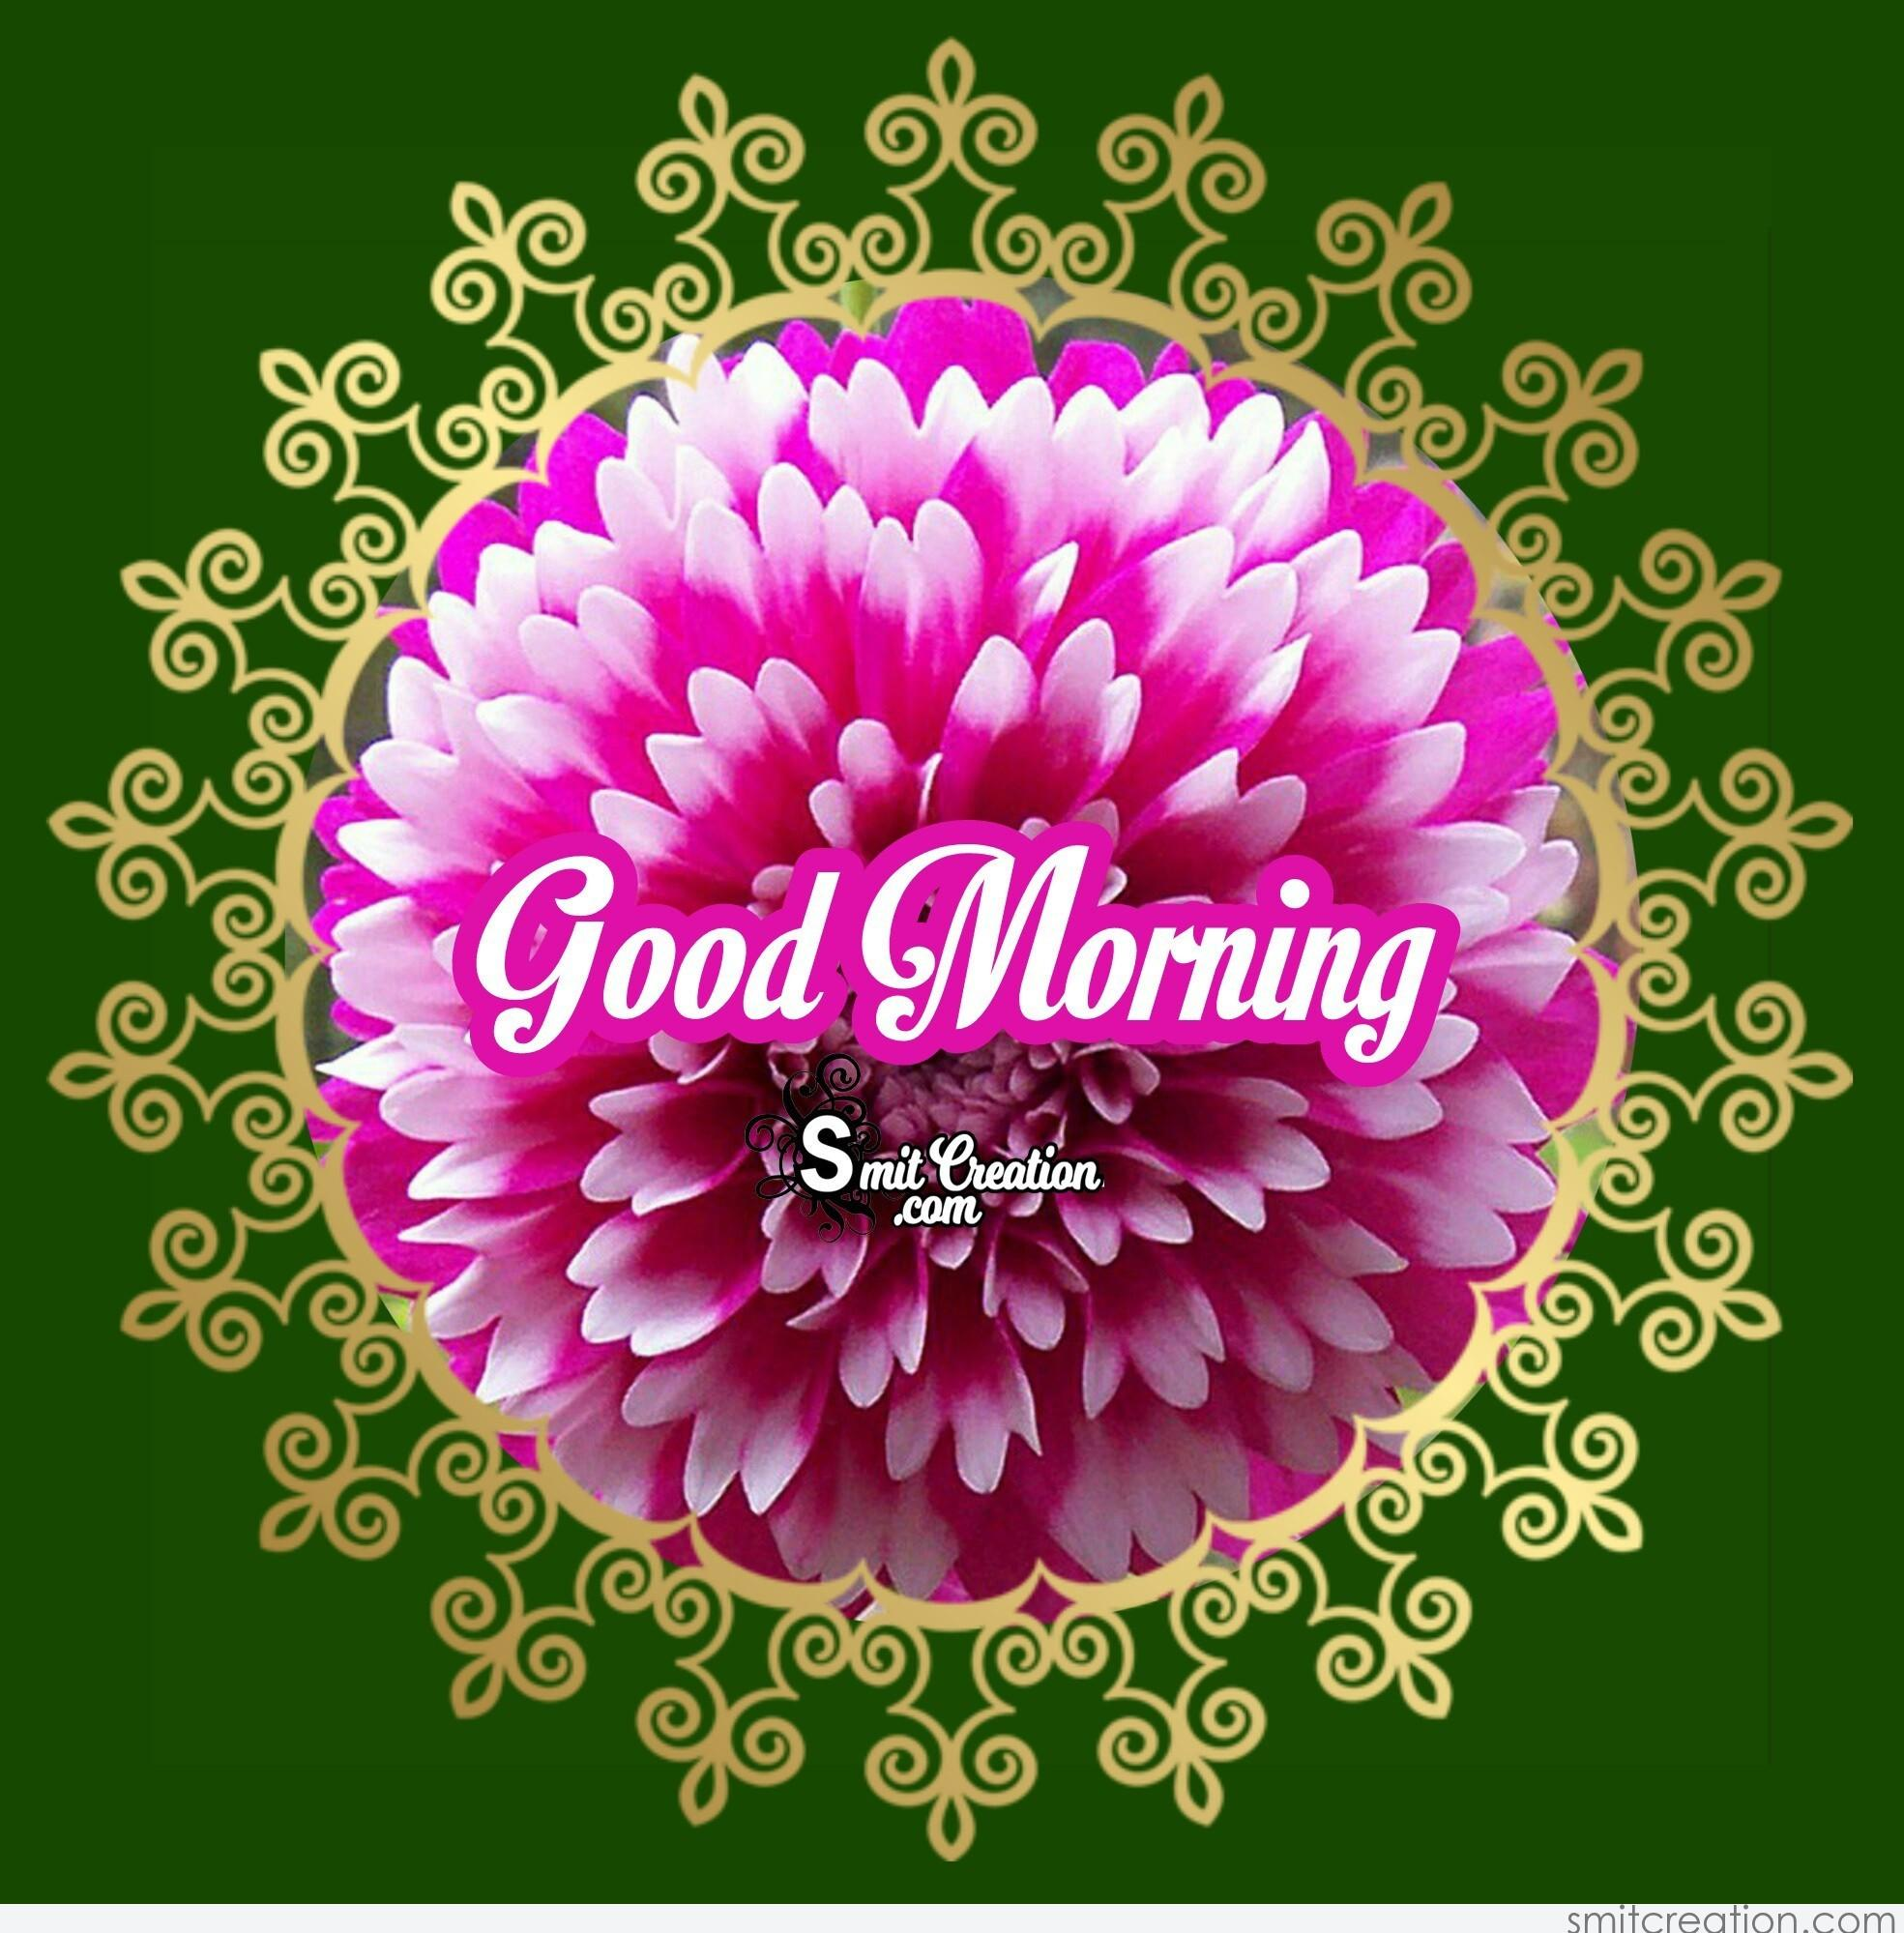 Good Morning Winter Flower : Good morning beautiful flower image smitcreation